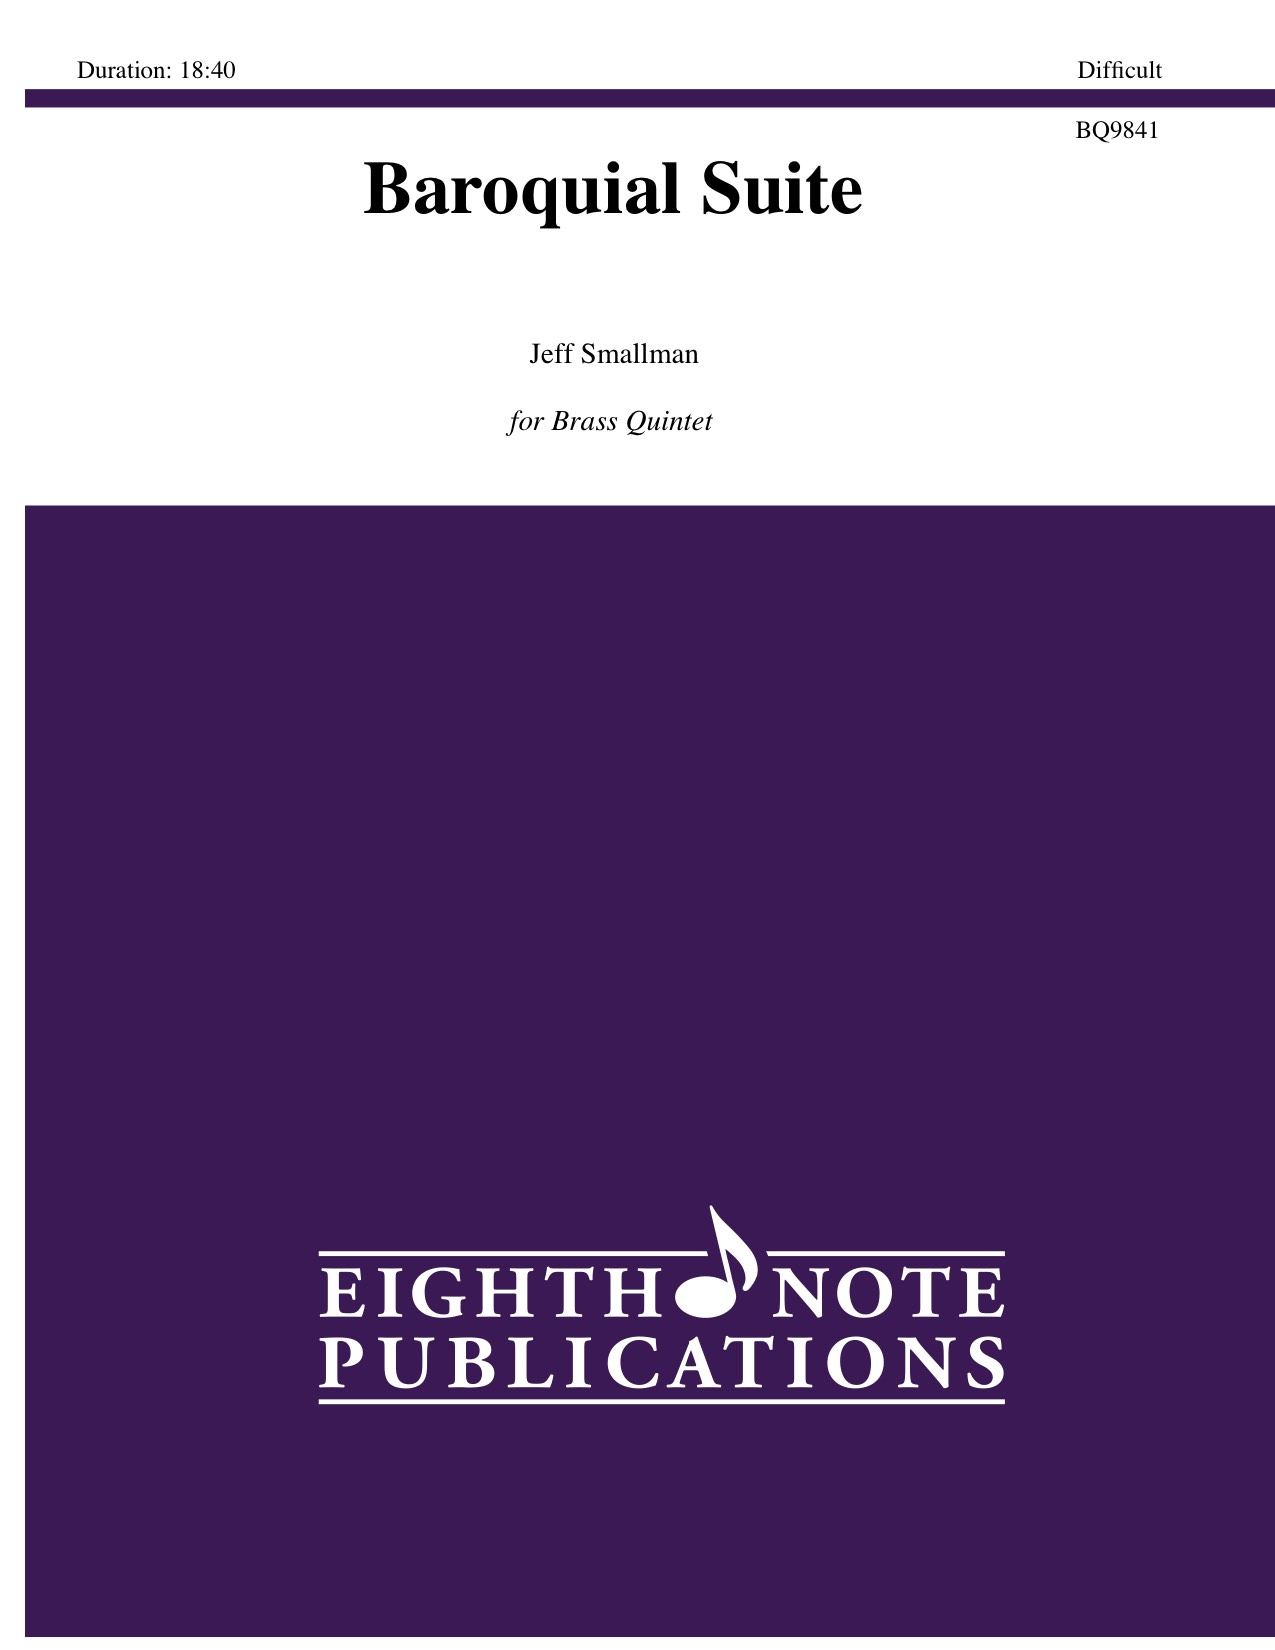 Baroquial Suite - Jeff Smallman